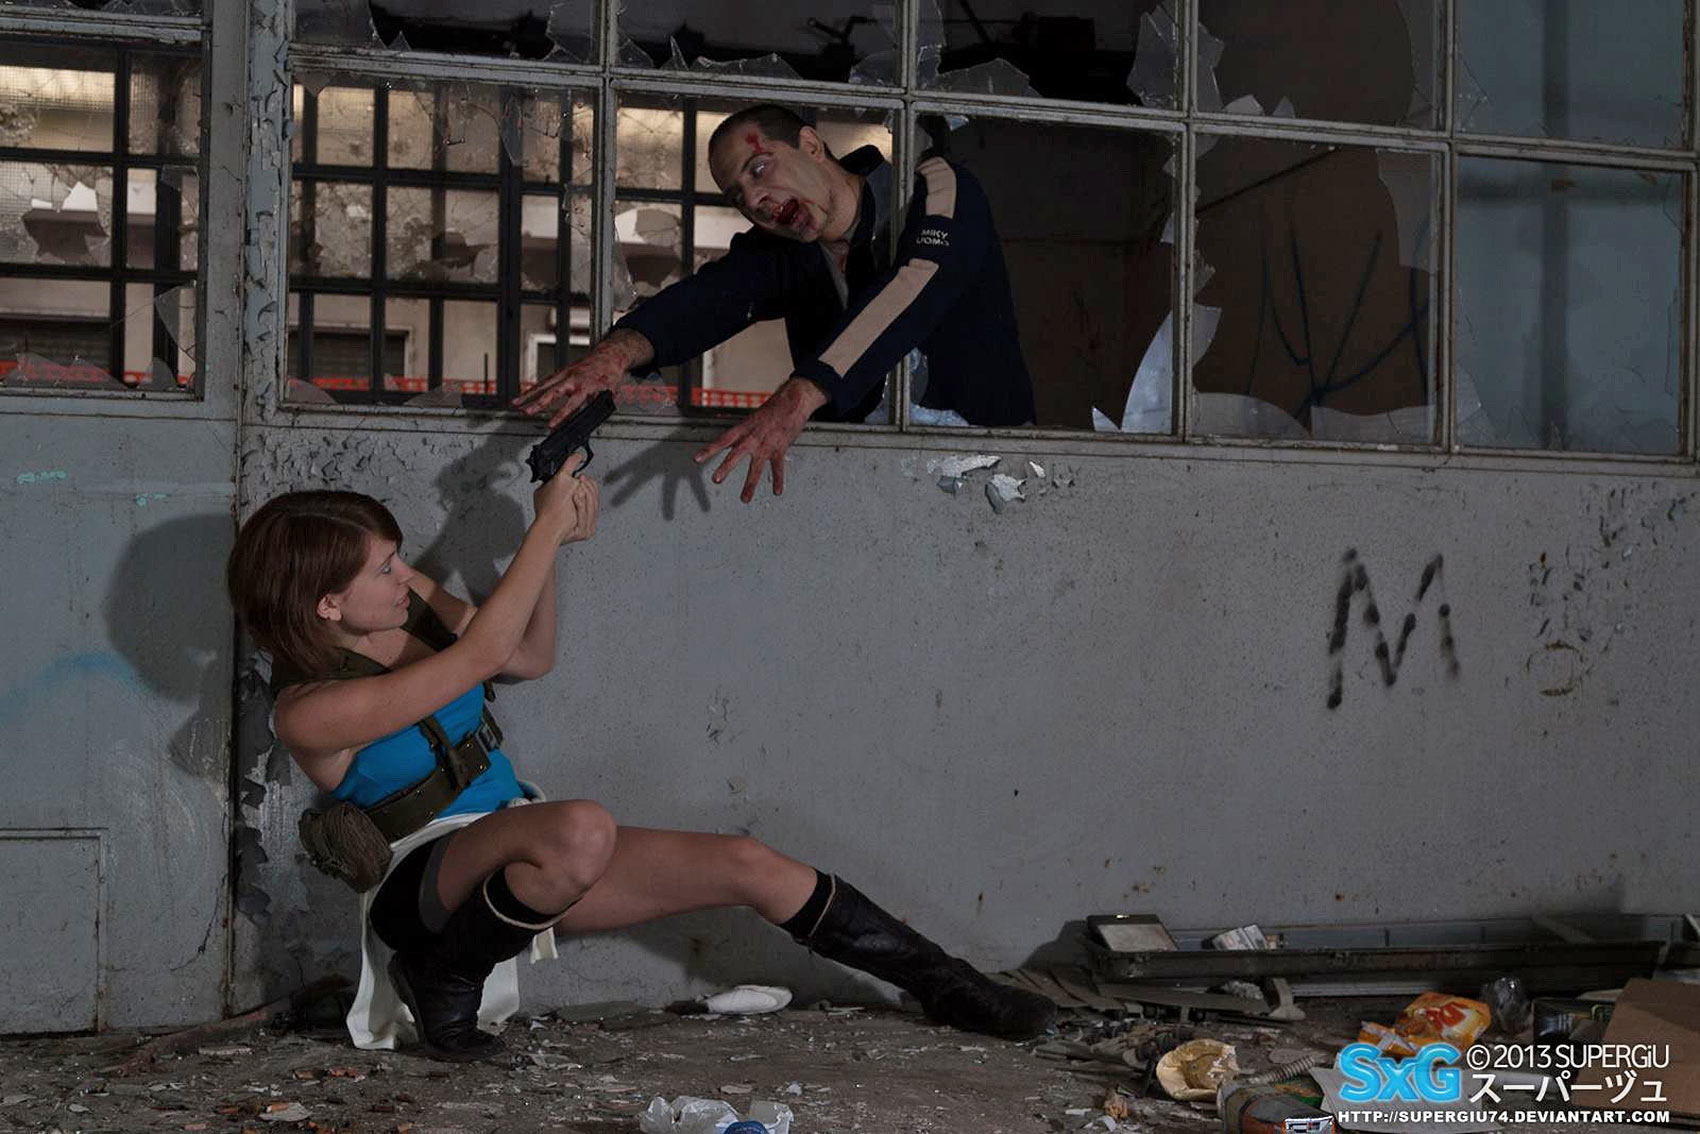 jill valentine and nemesis from resident evil 3 cosplay